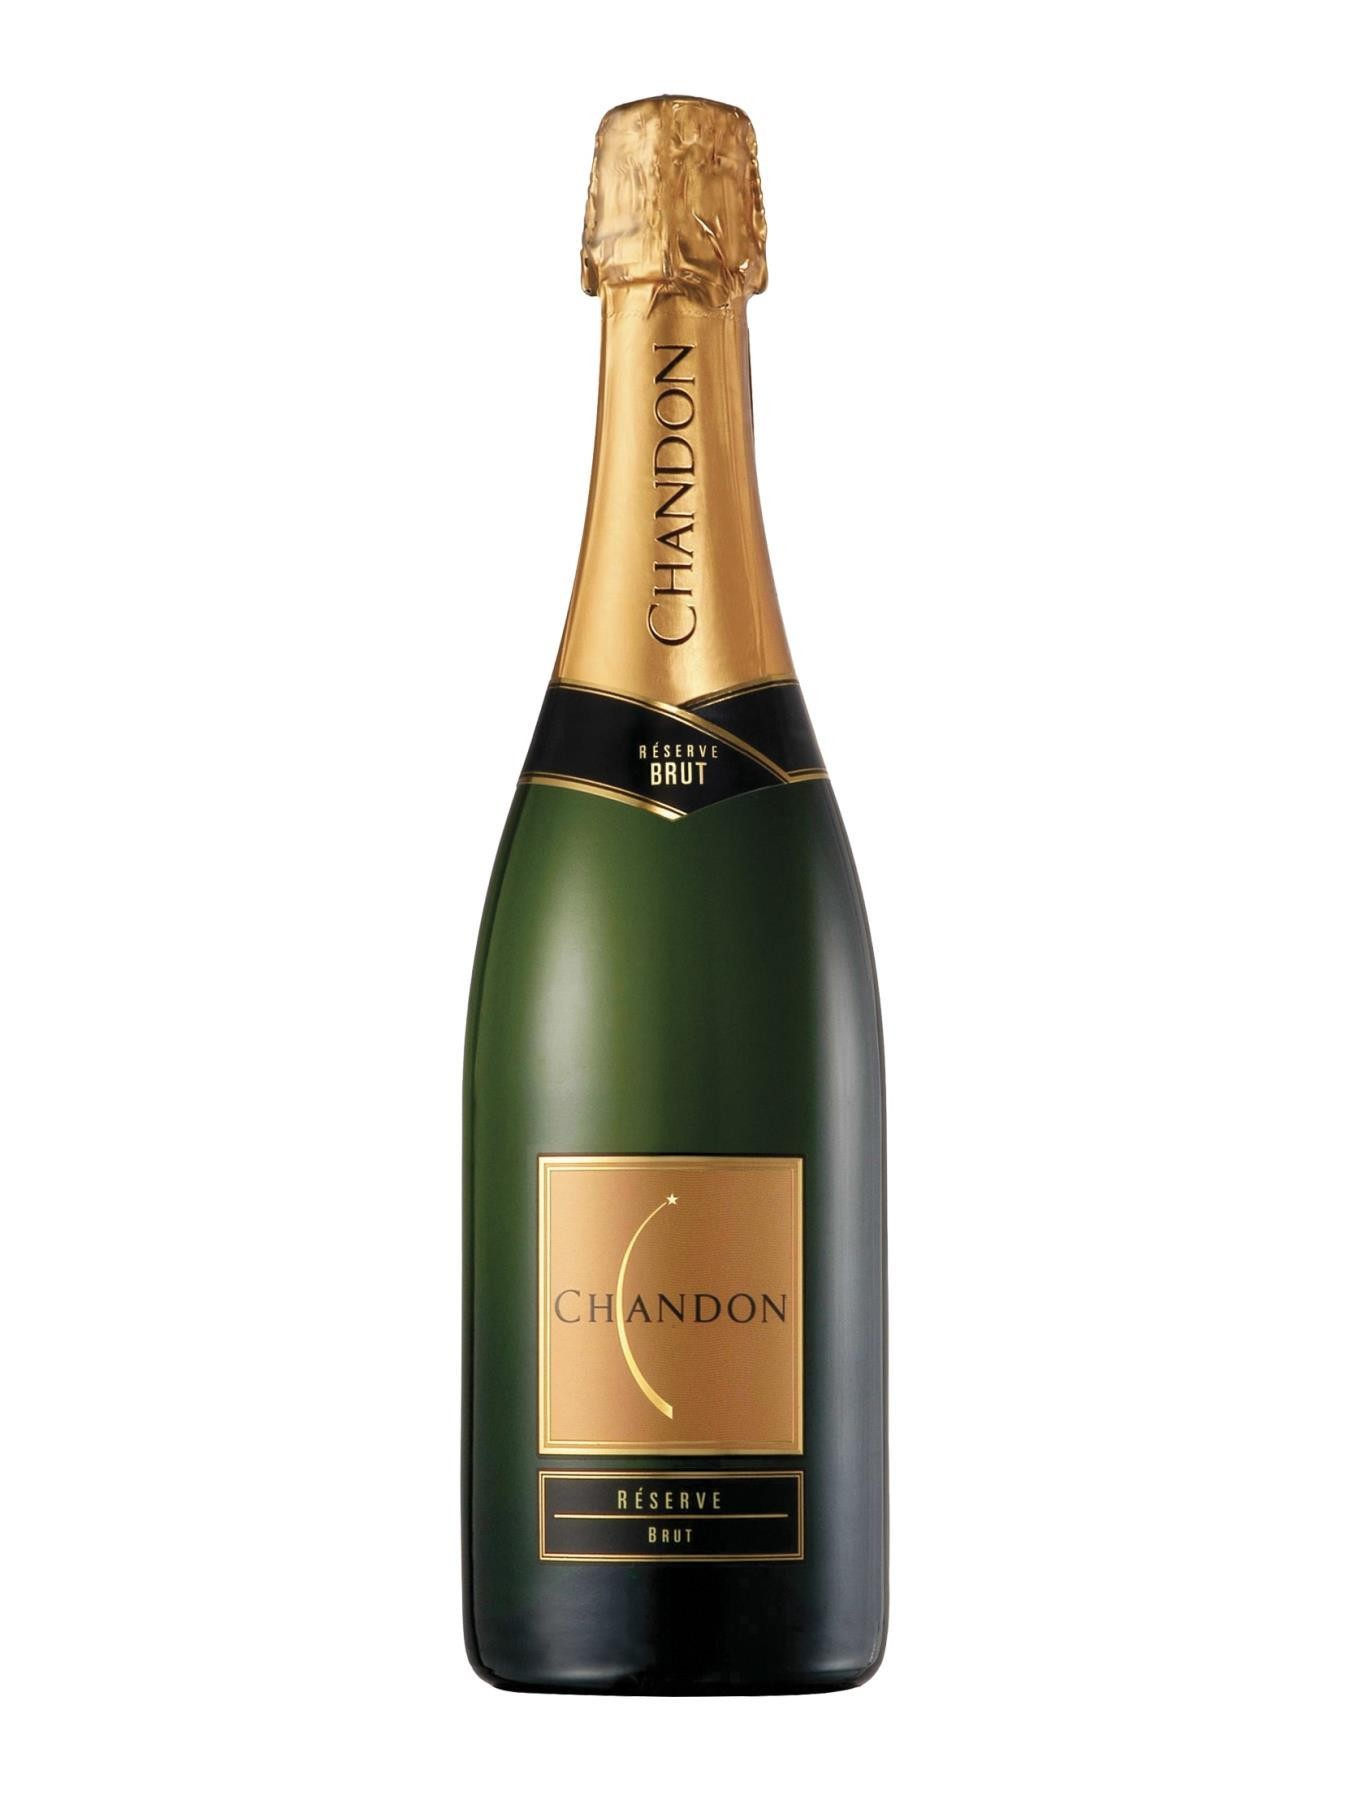 TESTE - ESPUMANTE CHANDON BRUT 750ML